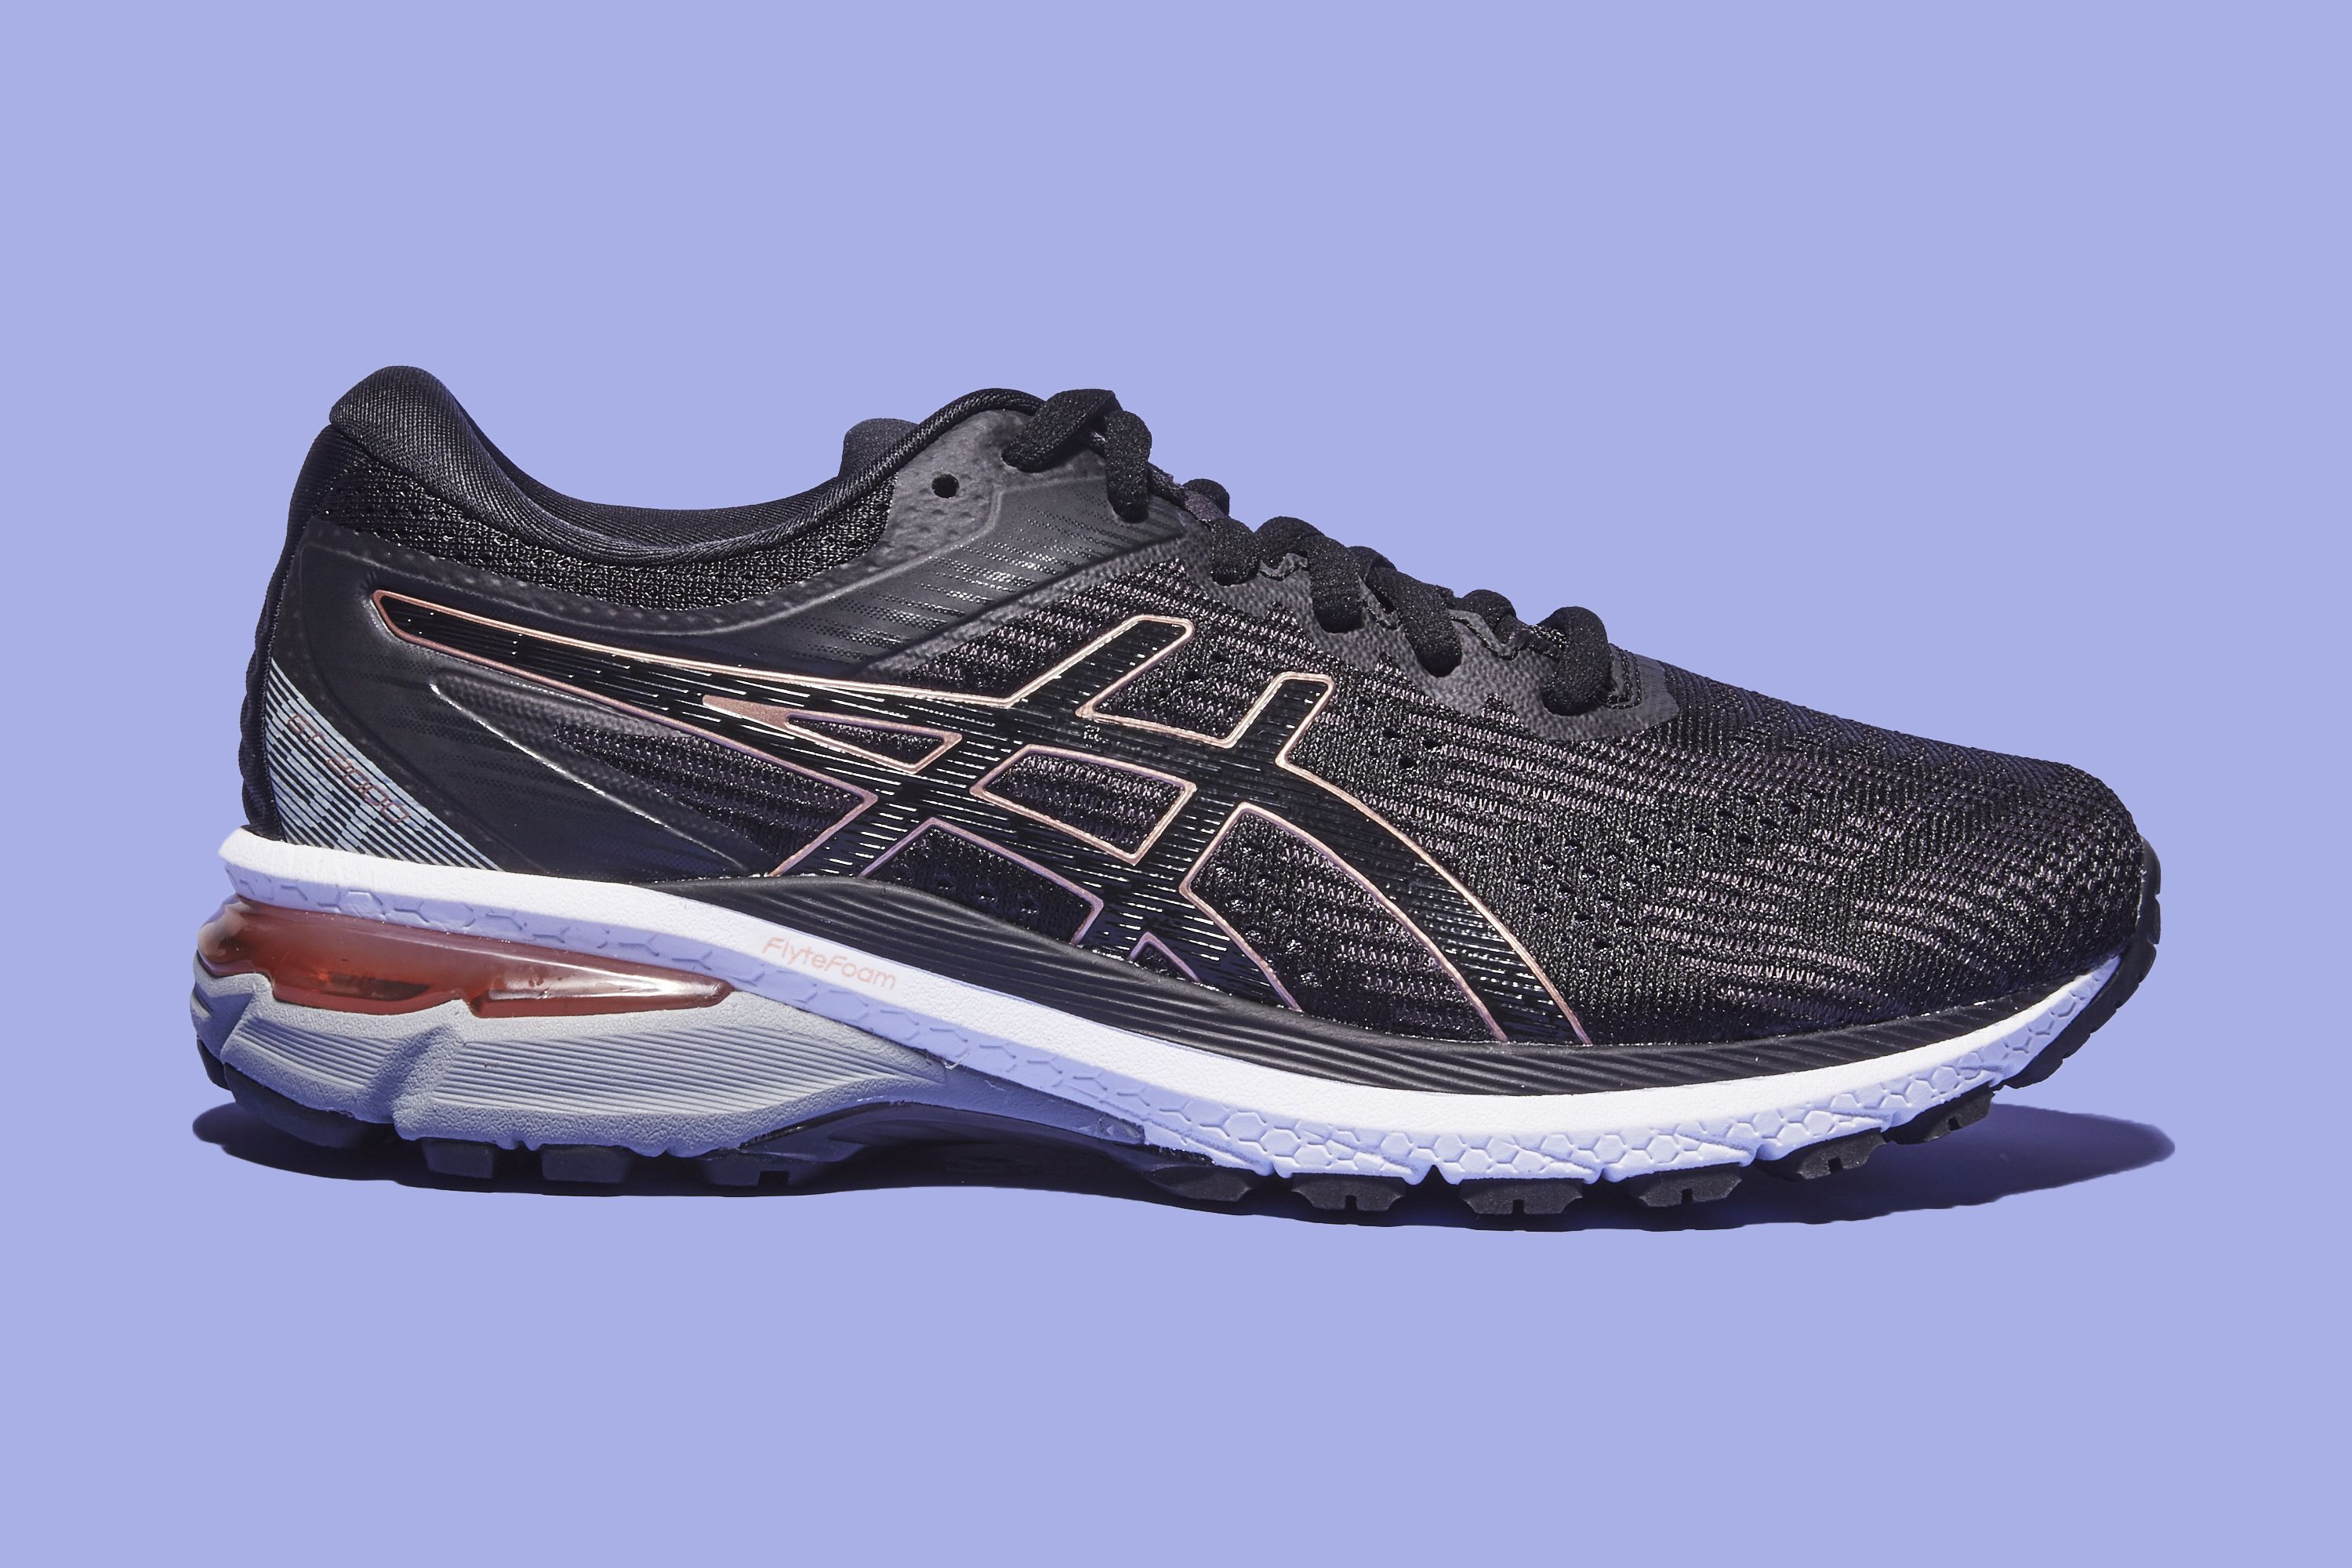 Asics GT-2000 8 Review | Asics Running Shoes